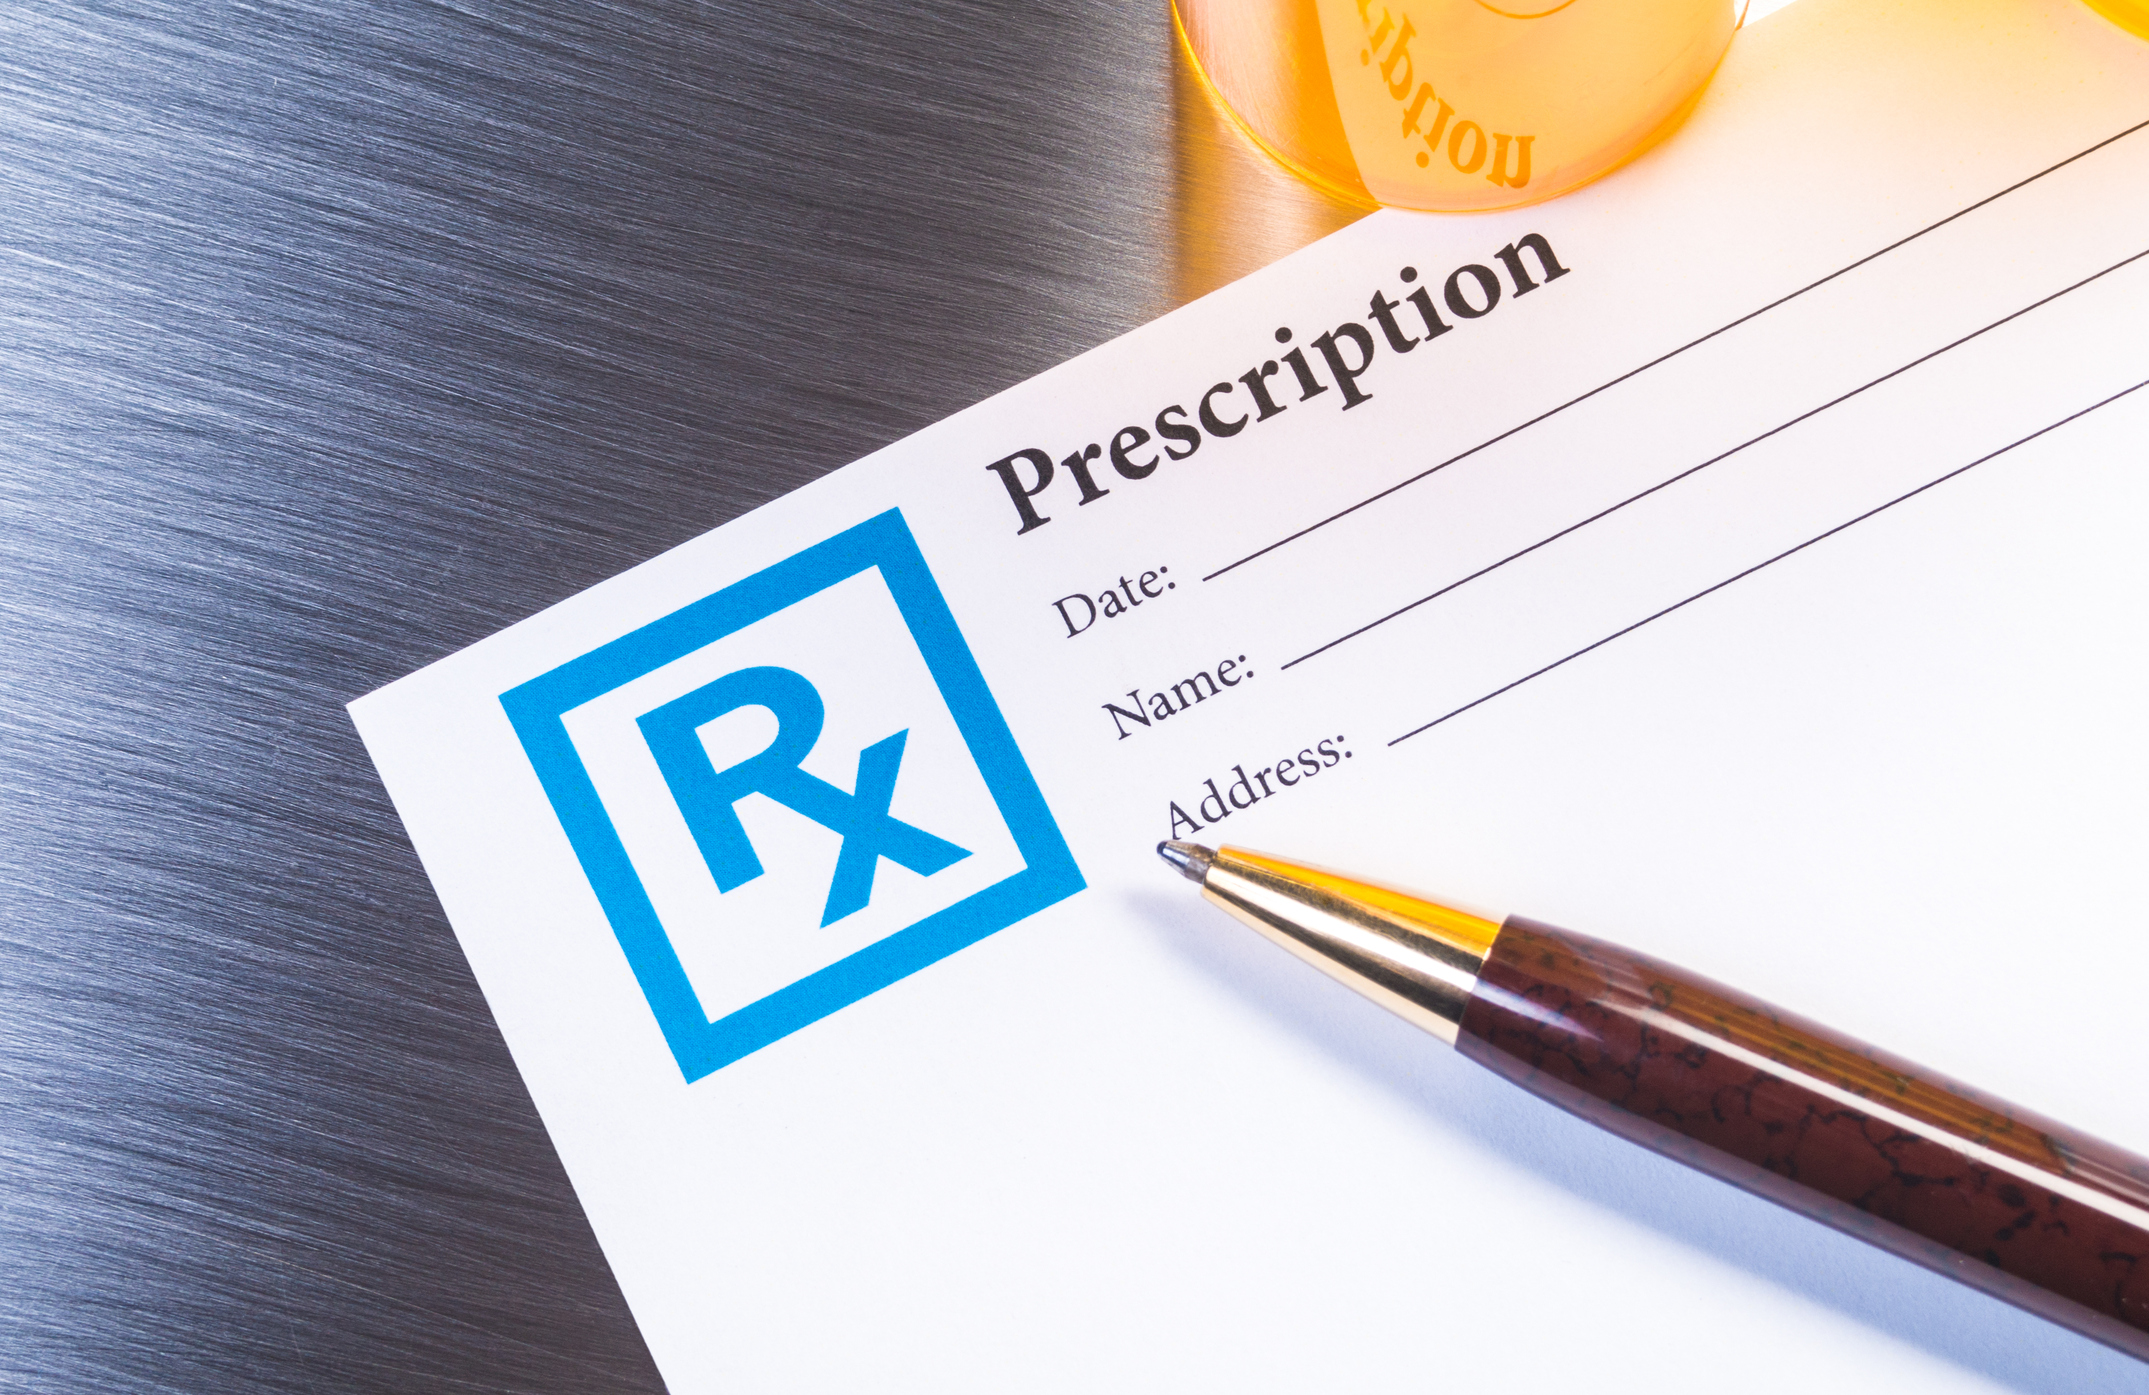 Prescription Medications in Canadian Pharmacy